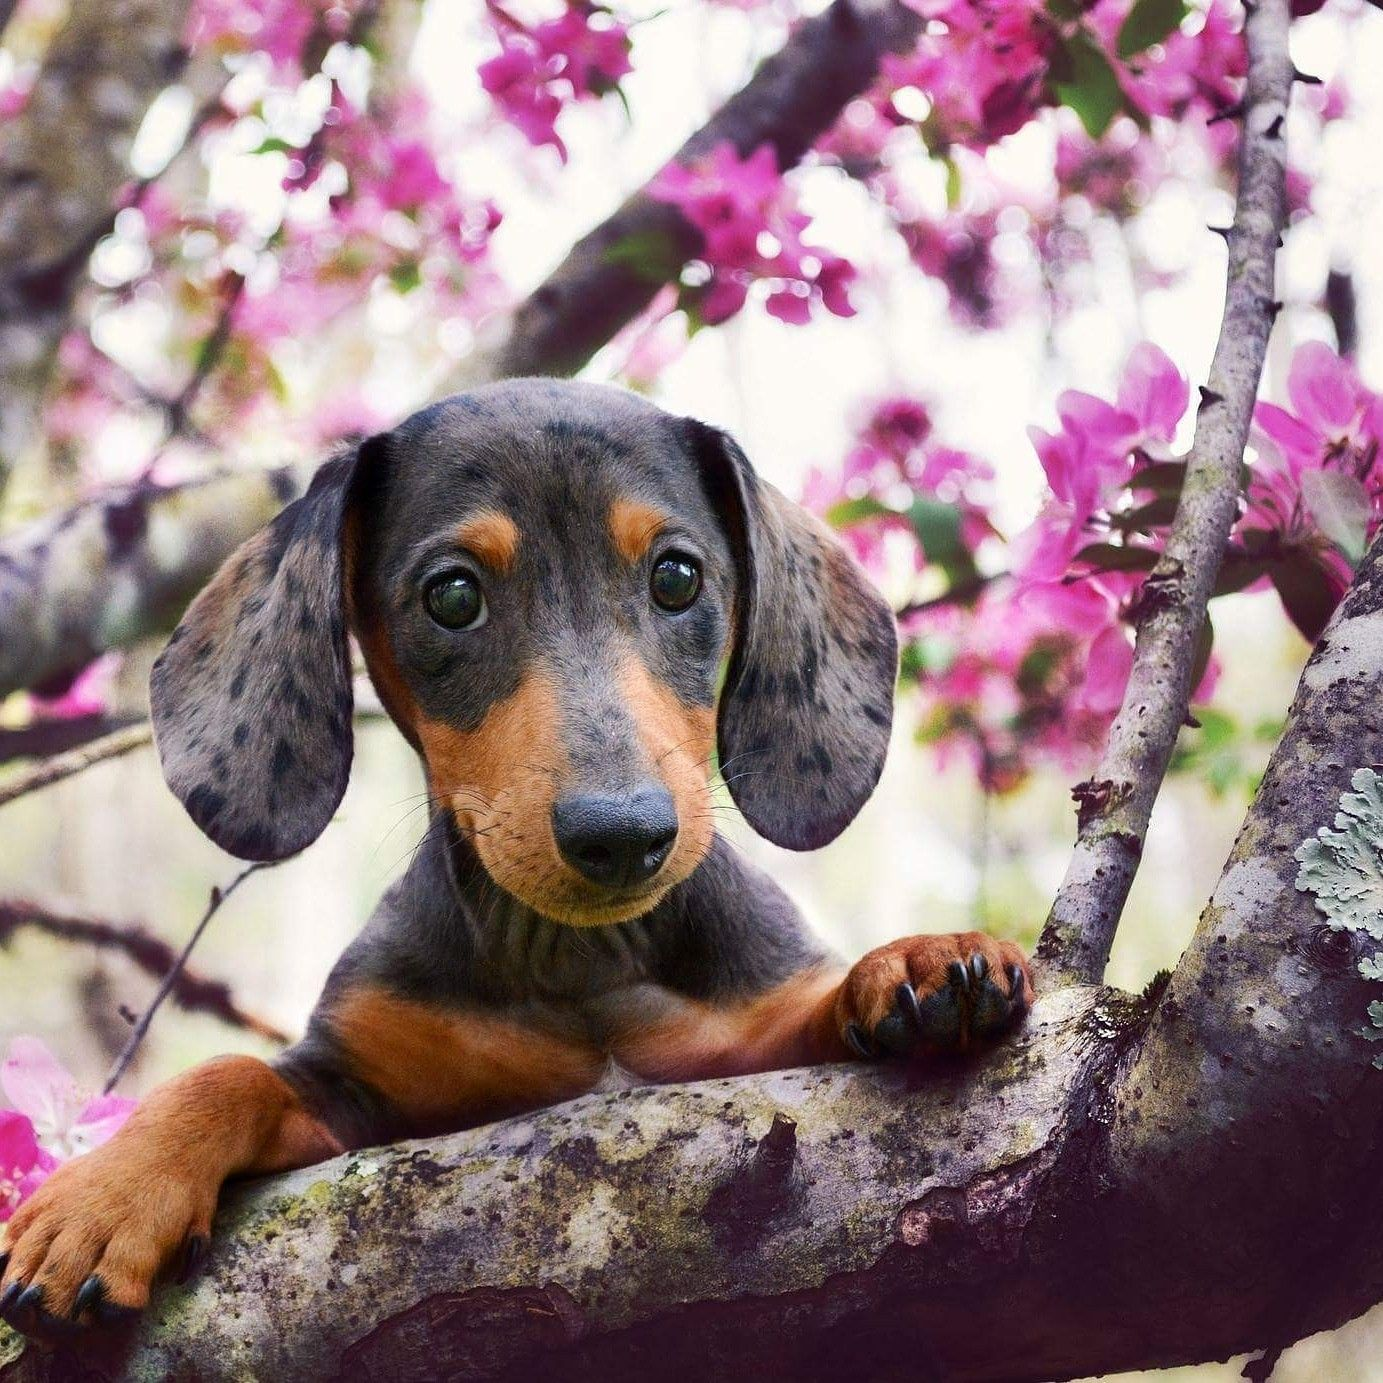 Pin By Zino On Animals And Pets With Images Dachshund Dog